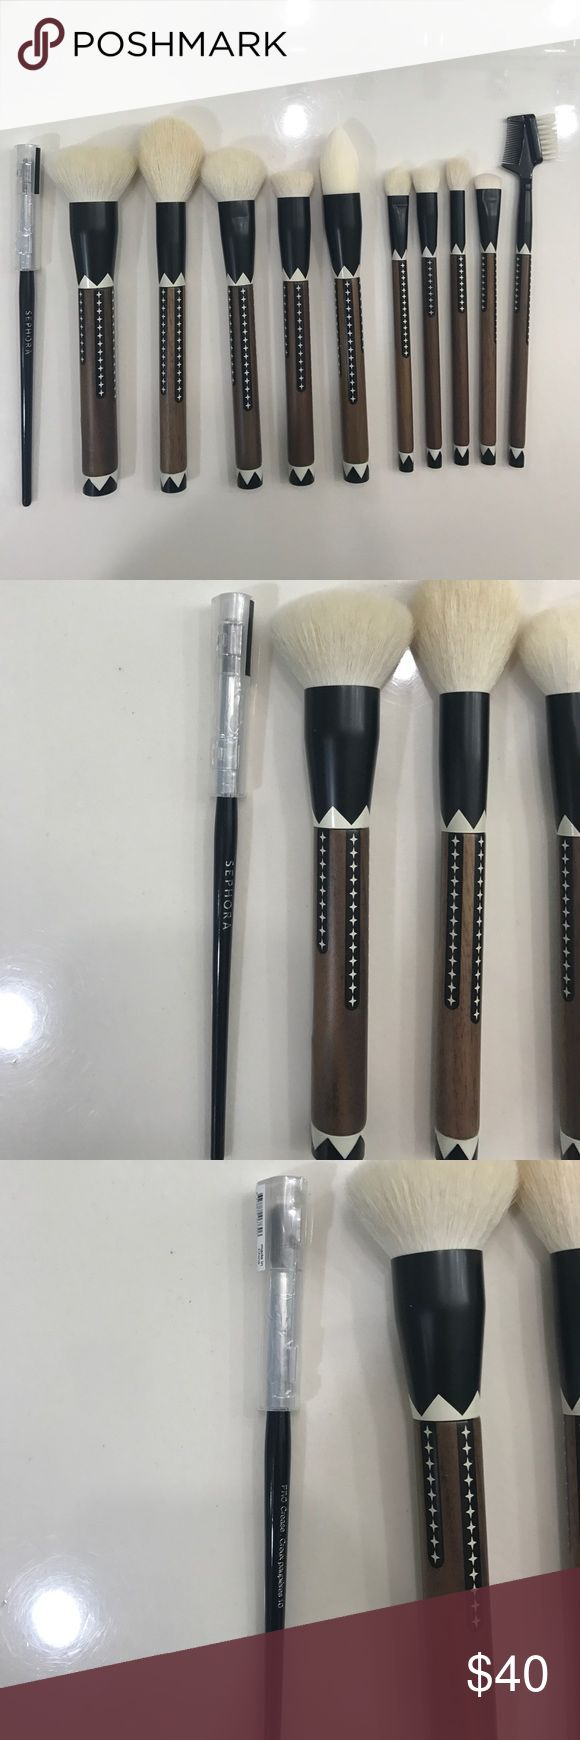 Sephora crease brush and Sonia Kashuk brush set Brand new sephora pro crease brush and Sonia kashuk Exotic Artisans  brush set without box. Bought the Sonia kashuk set last holiday but never used them. Really nice soft brushes!when referring to last pic, set is only missing the precision pencil and eyeliner brushes because i have used them. Sephora and Sonia Kashuk Makeup Brushes & Tools #exoticmakeup